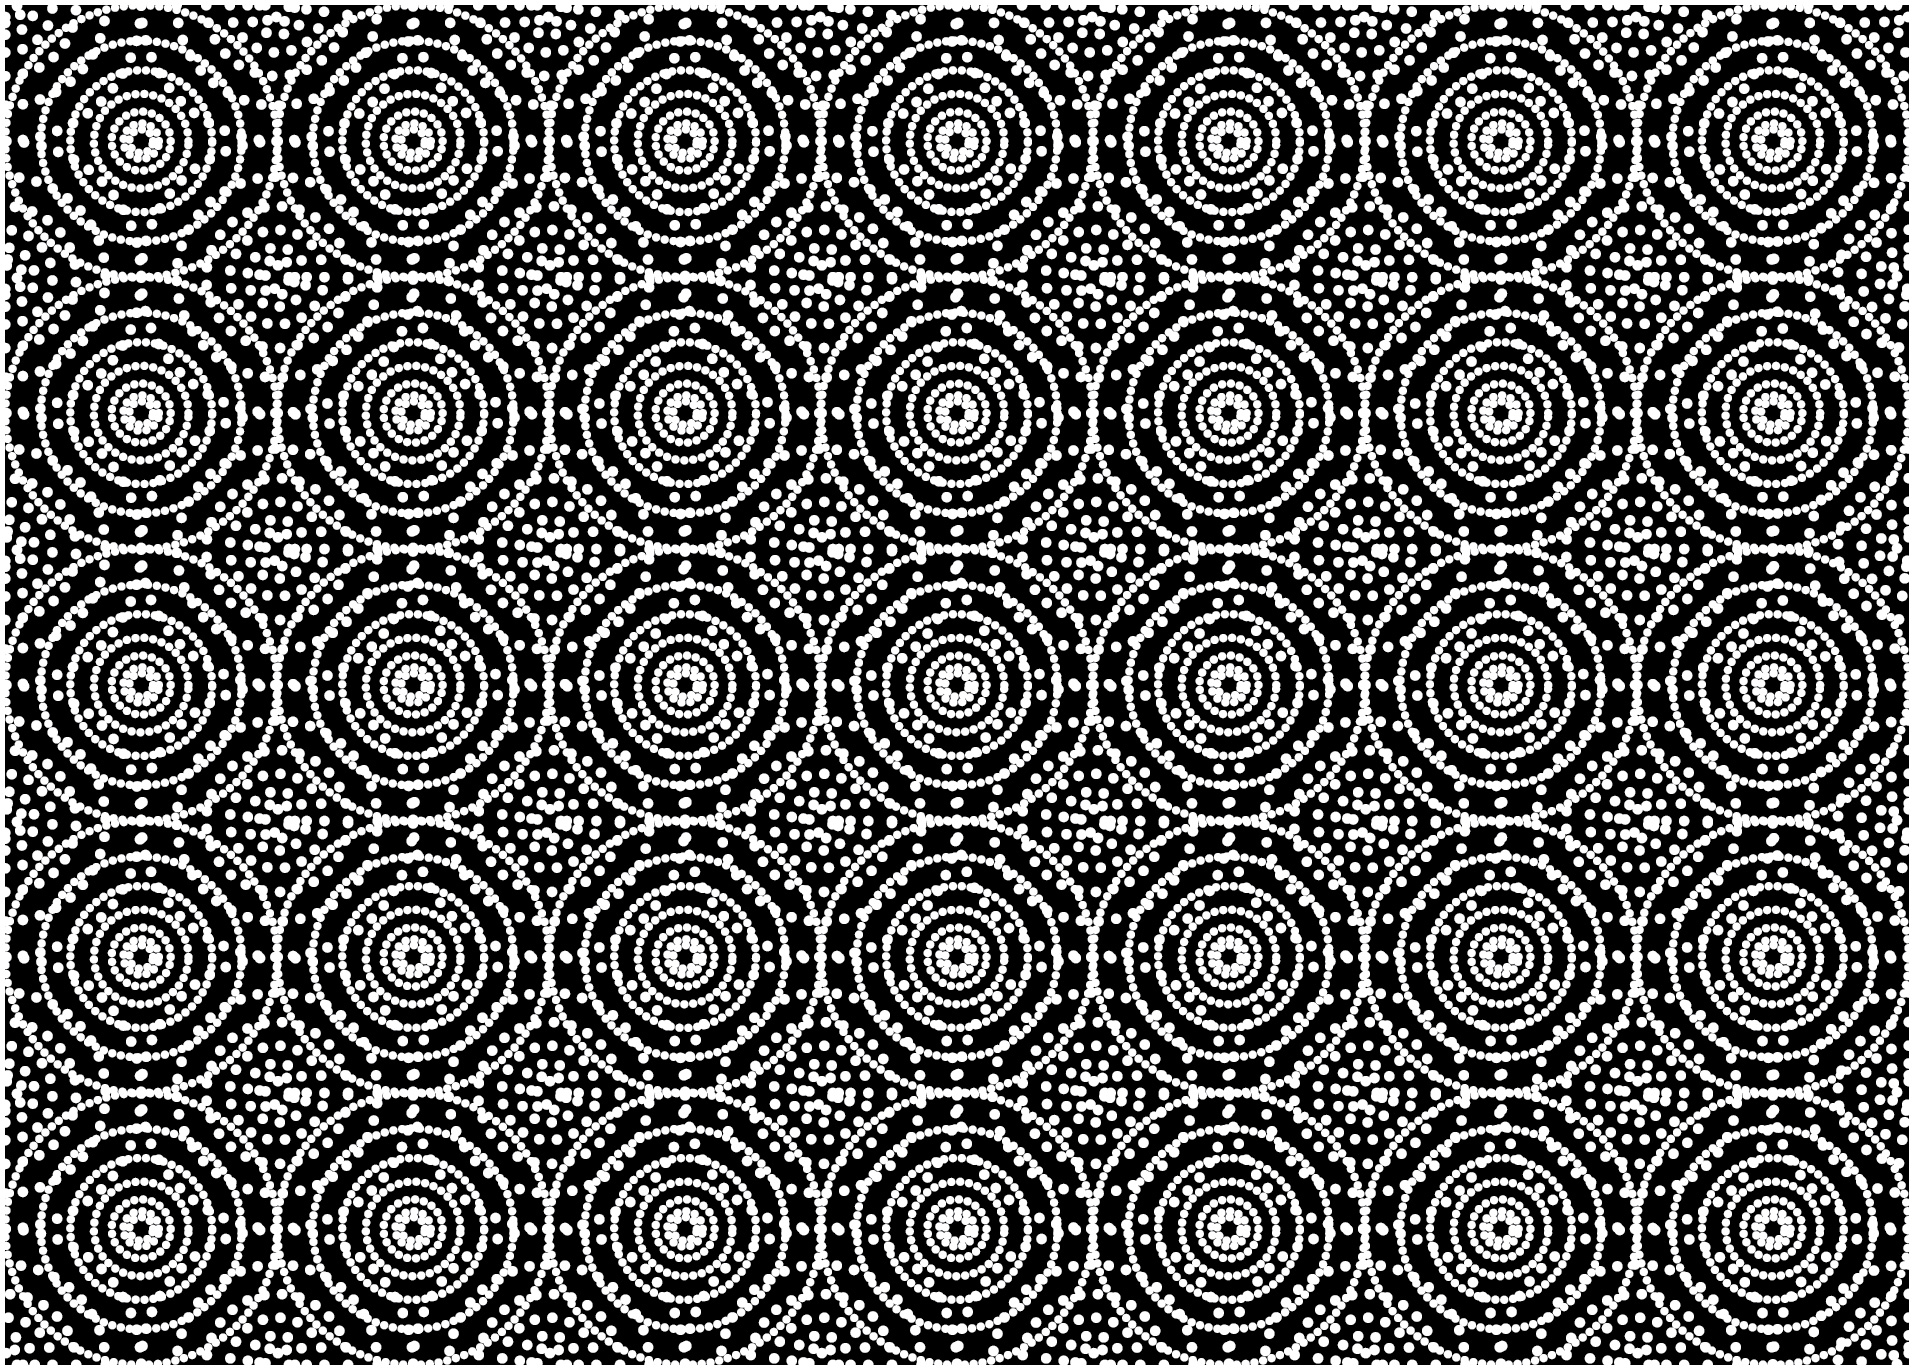 Download Free Seamless Of Multi Dots Round Pattern Graphic By Asesidea for Cricut Explore, Silhouette and other cutting machines.